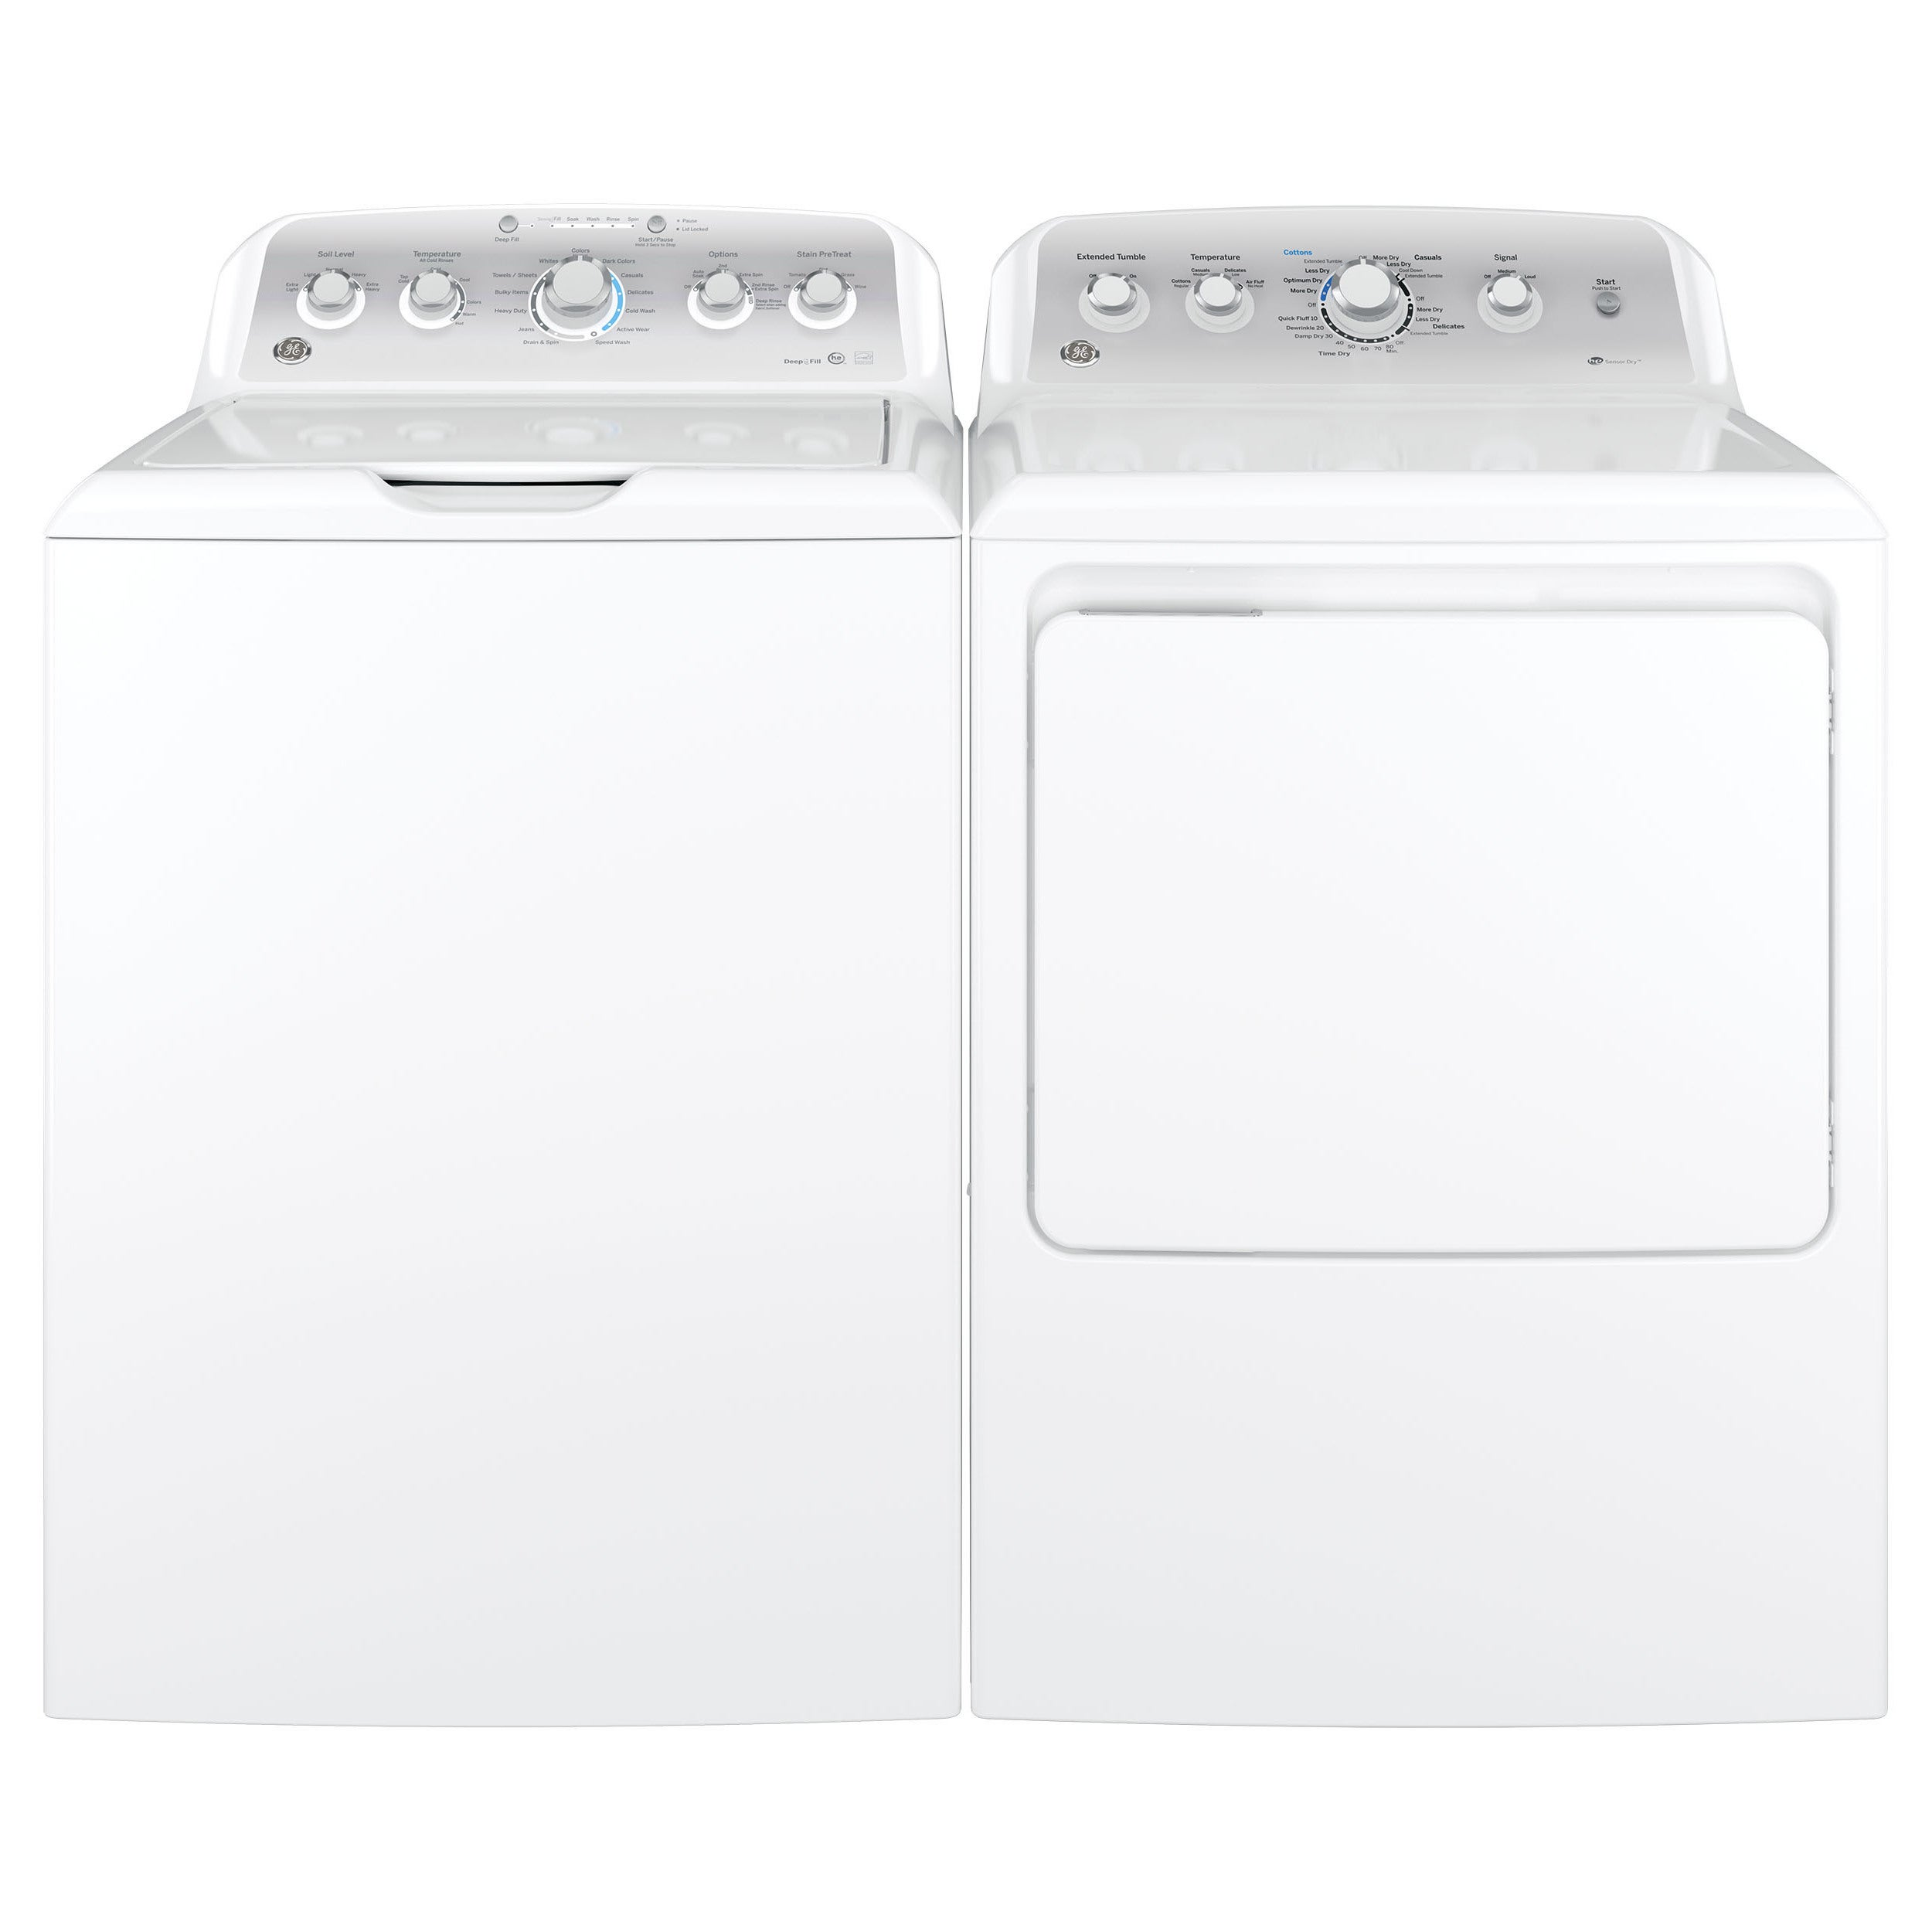 GE Top-load Washer and Long Vent Gas Dryer Pair (White) (...